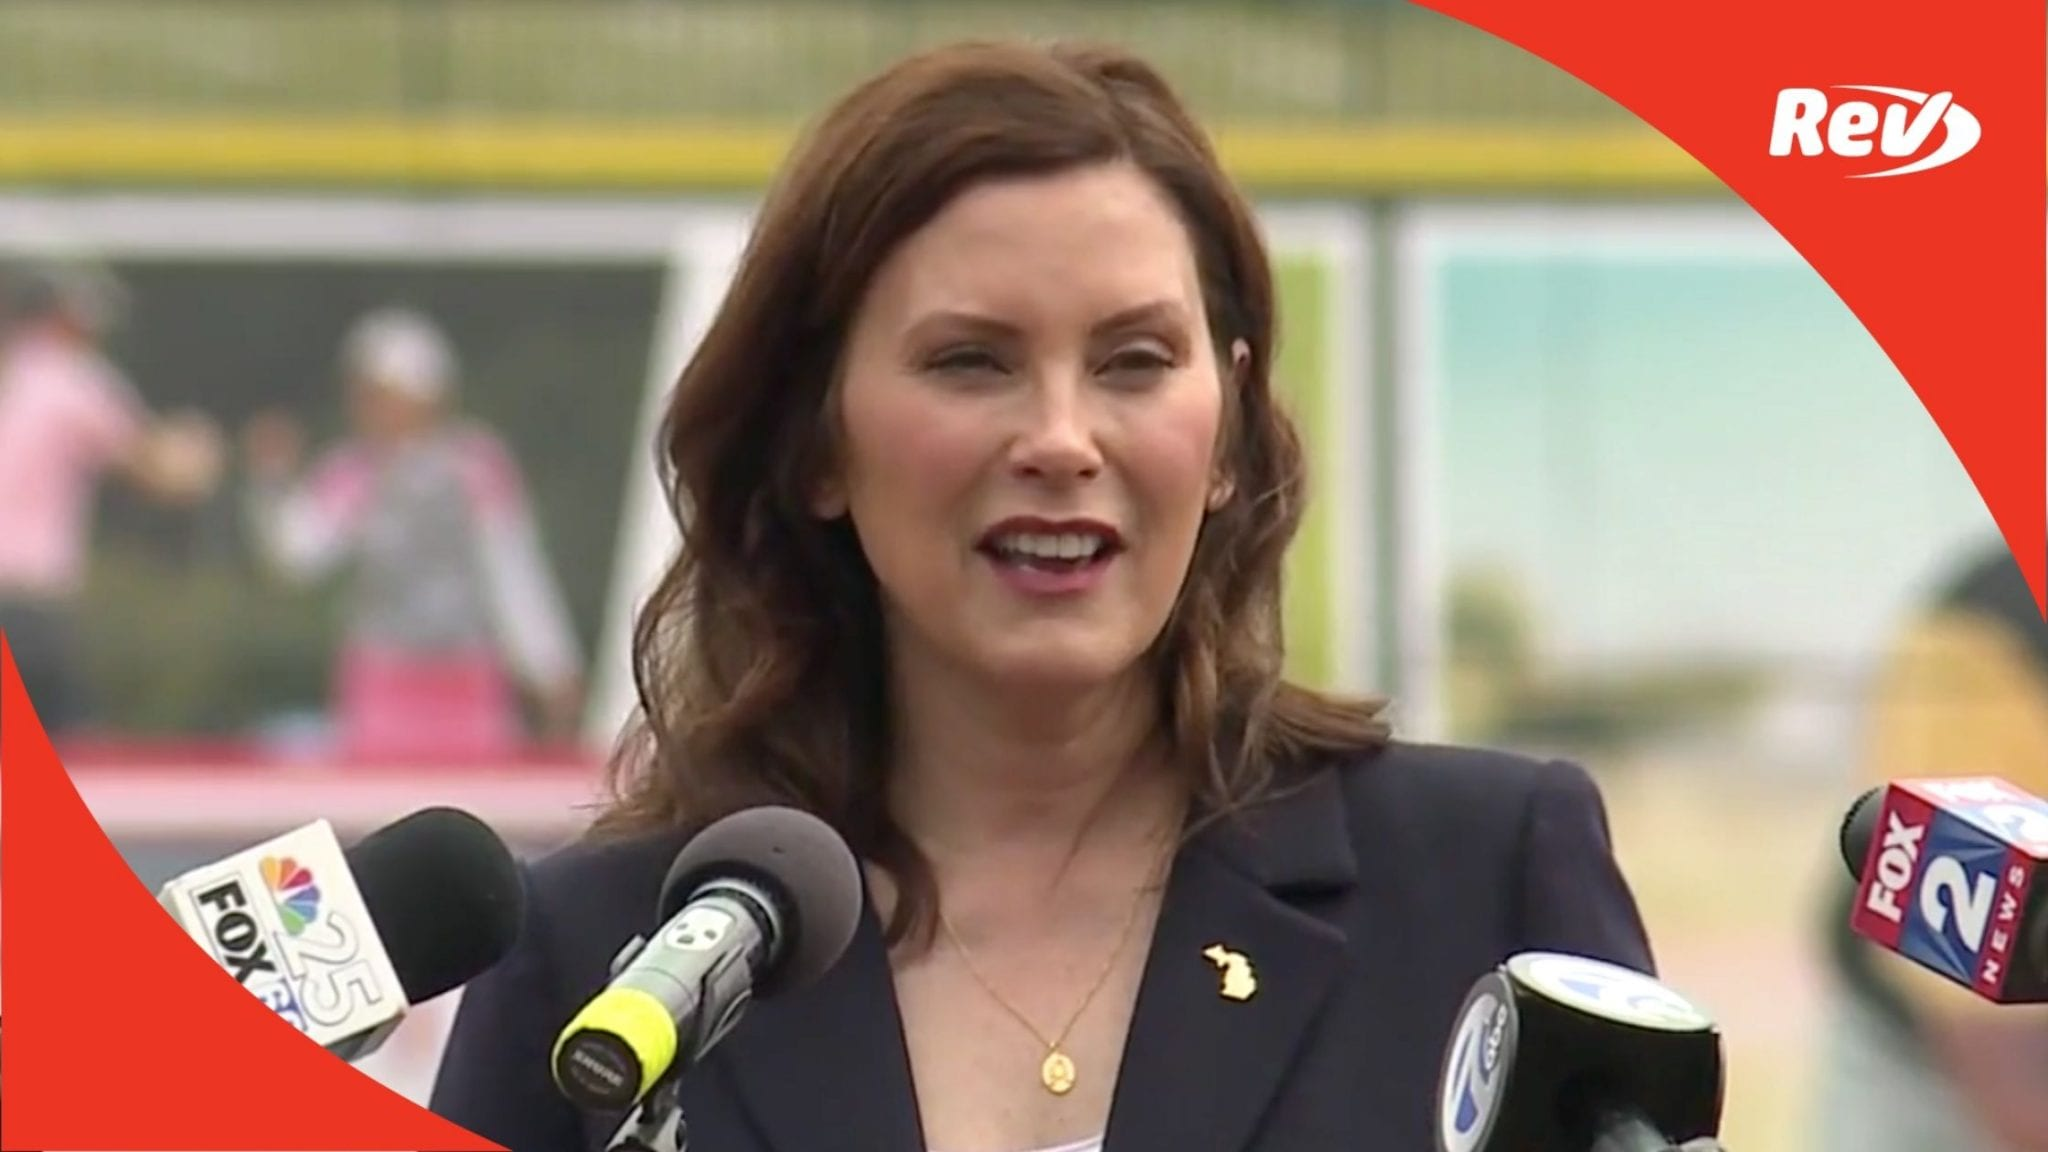 Michigan Gov. Gretchen Whitmer Press Conference Transcript May 20: Mask Order to be Lifted July 1